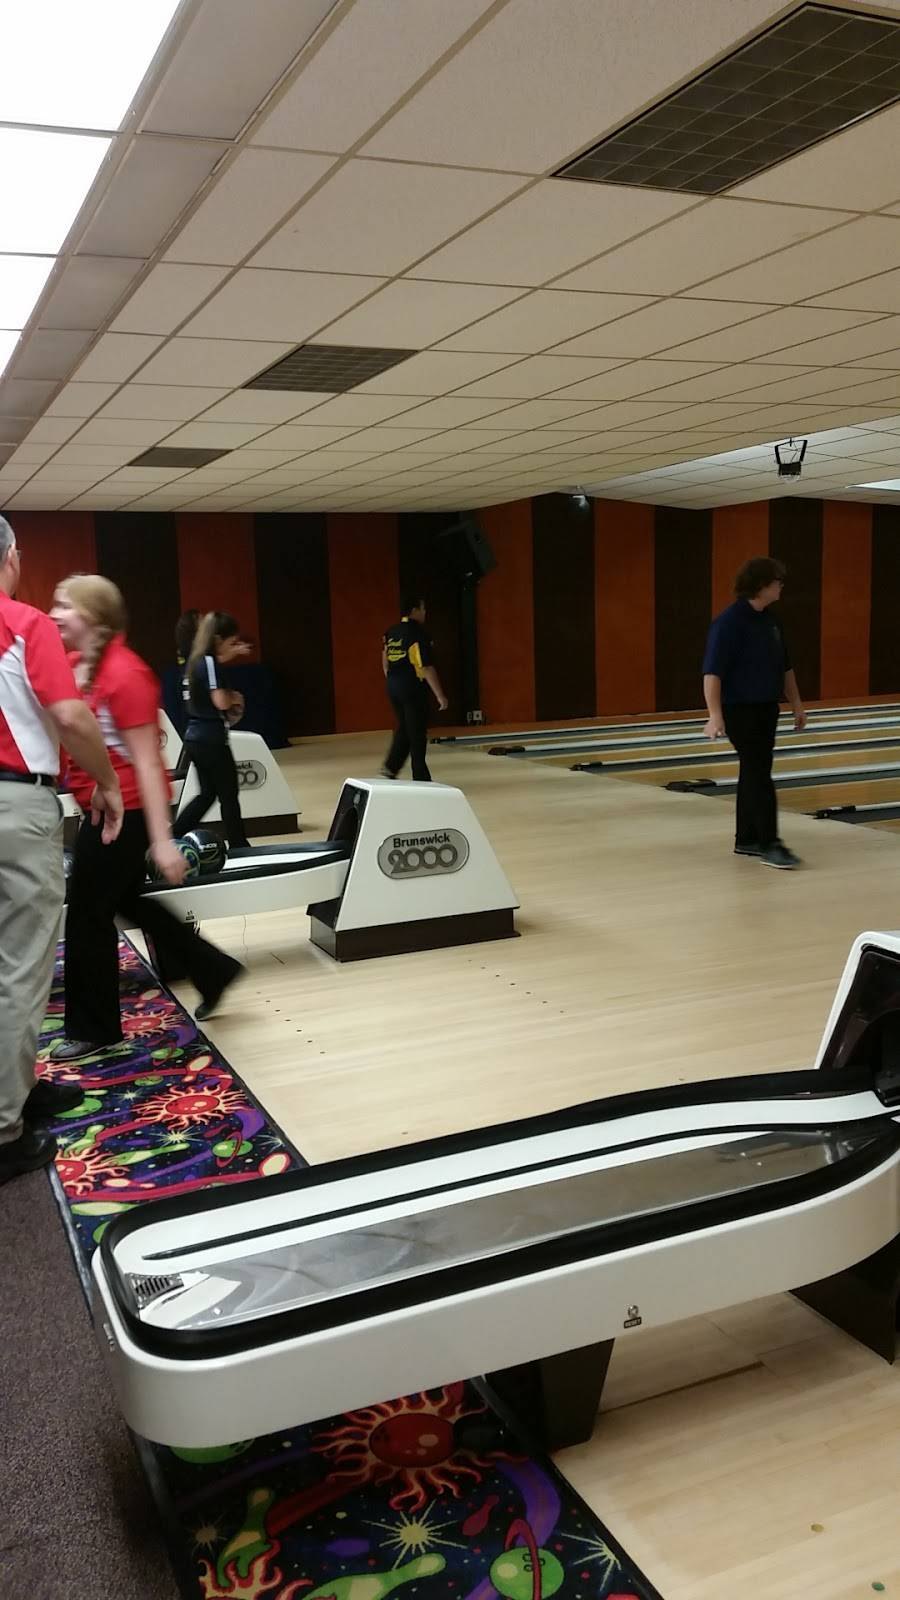 Spare Time Lanes | restaurant | 1306 US-27, Berne, IN 46711, USA | 2605892927 OR +1 260-589-2927